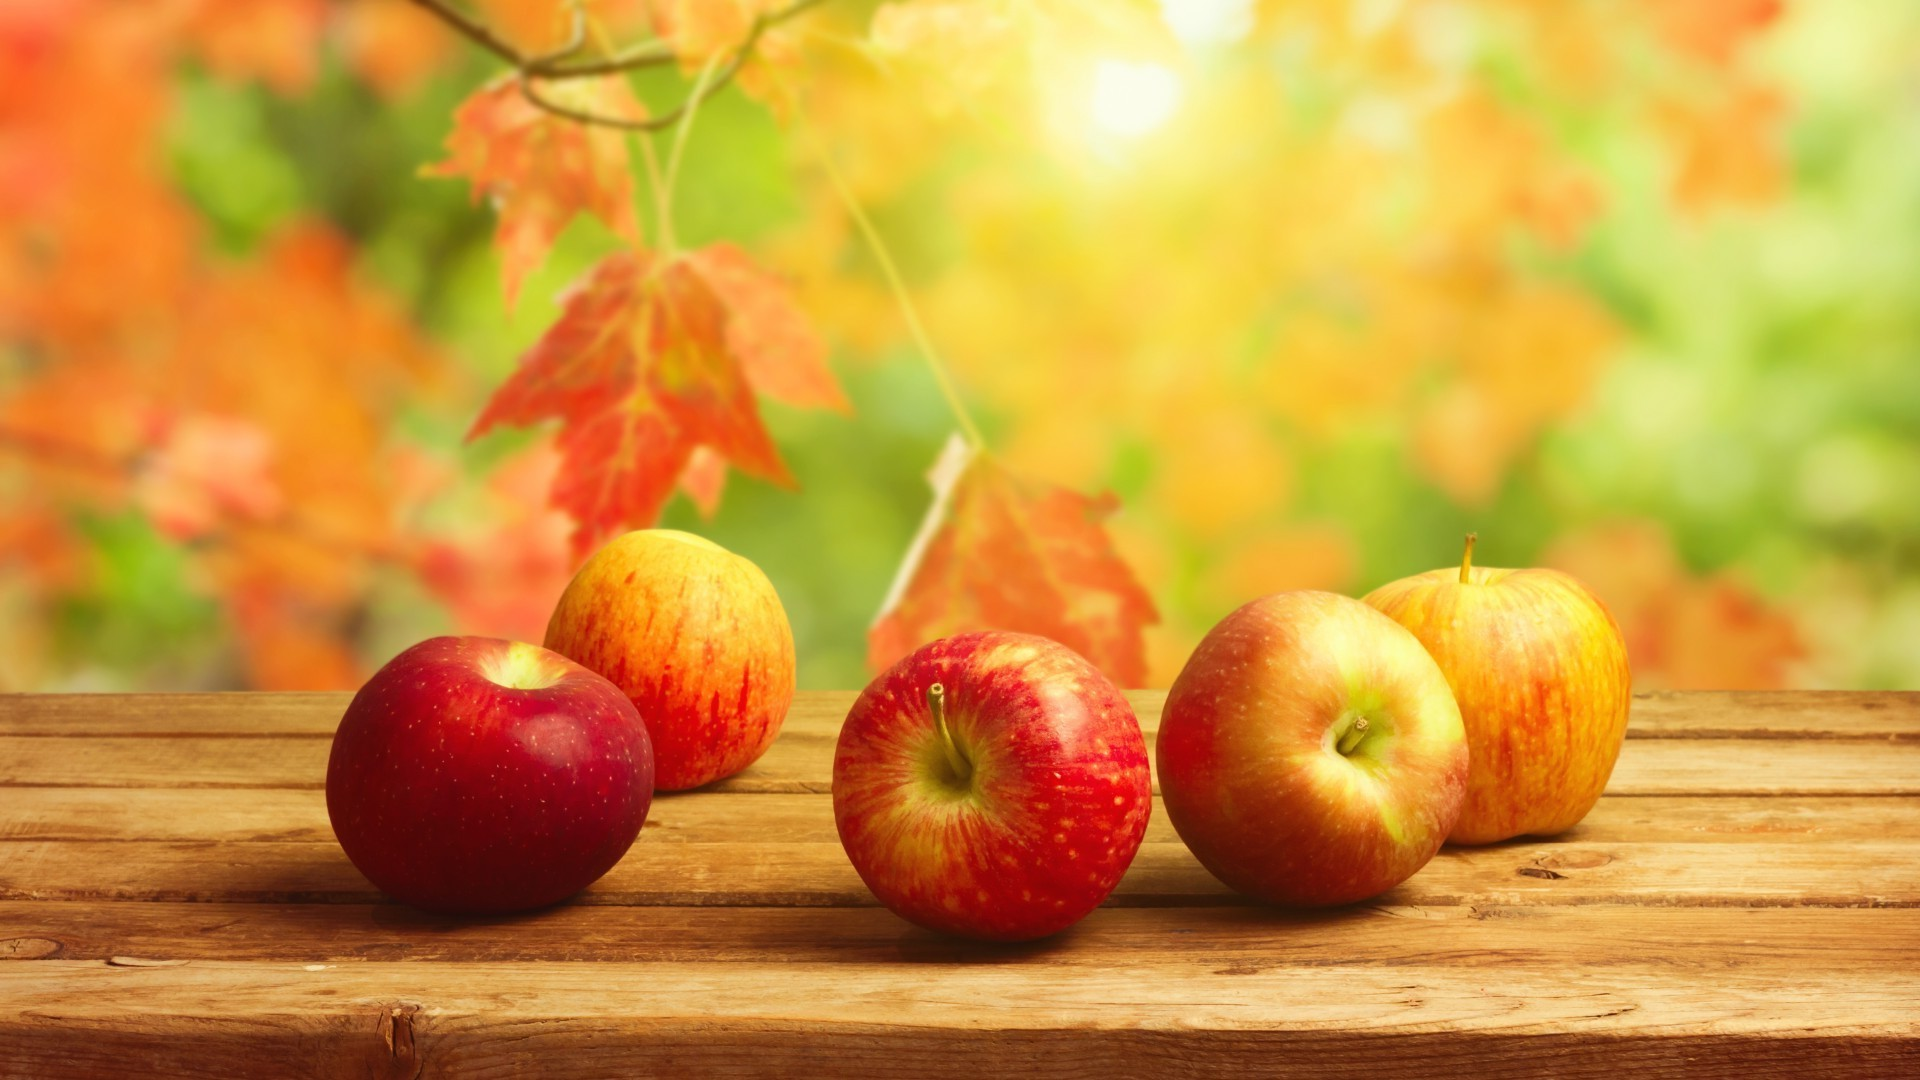 Apples. Android Wallpapers For Free